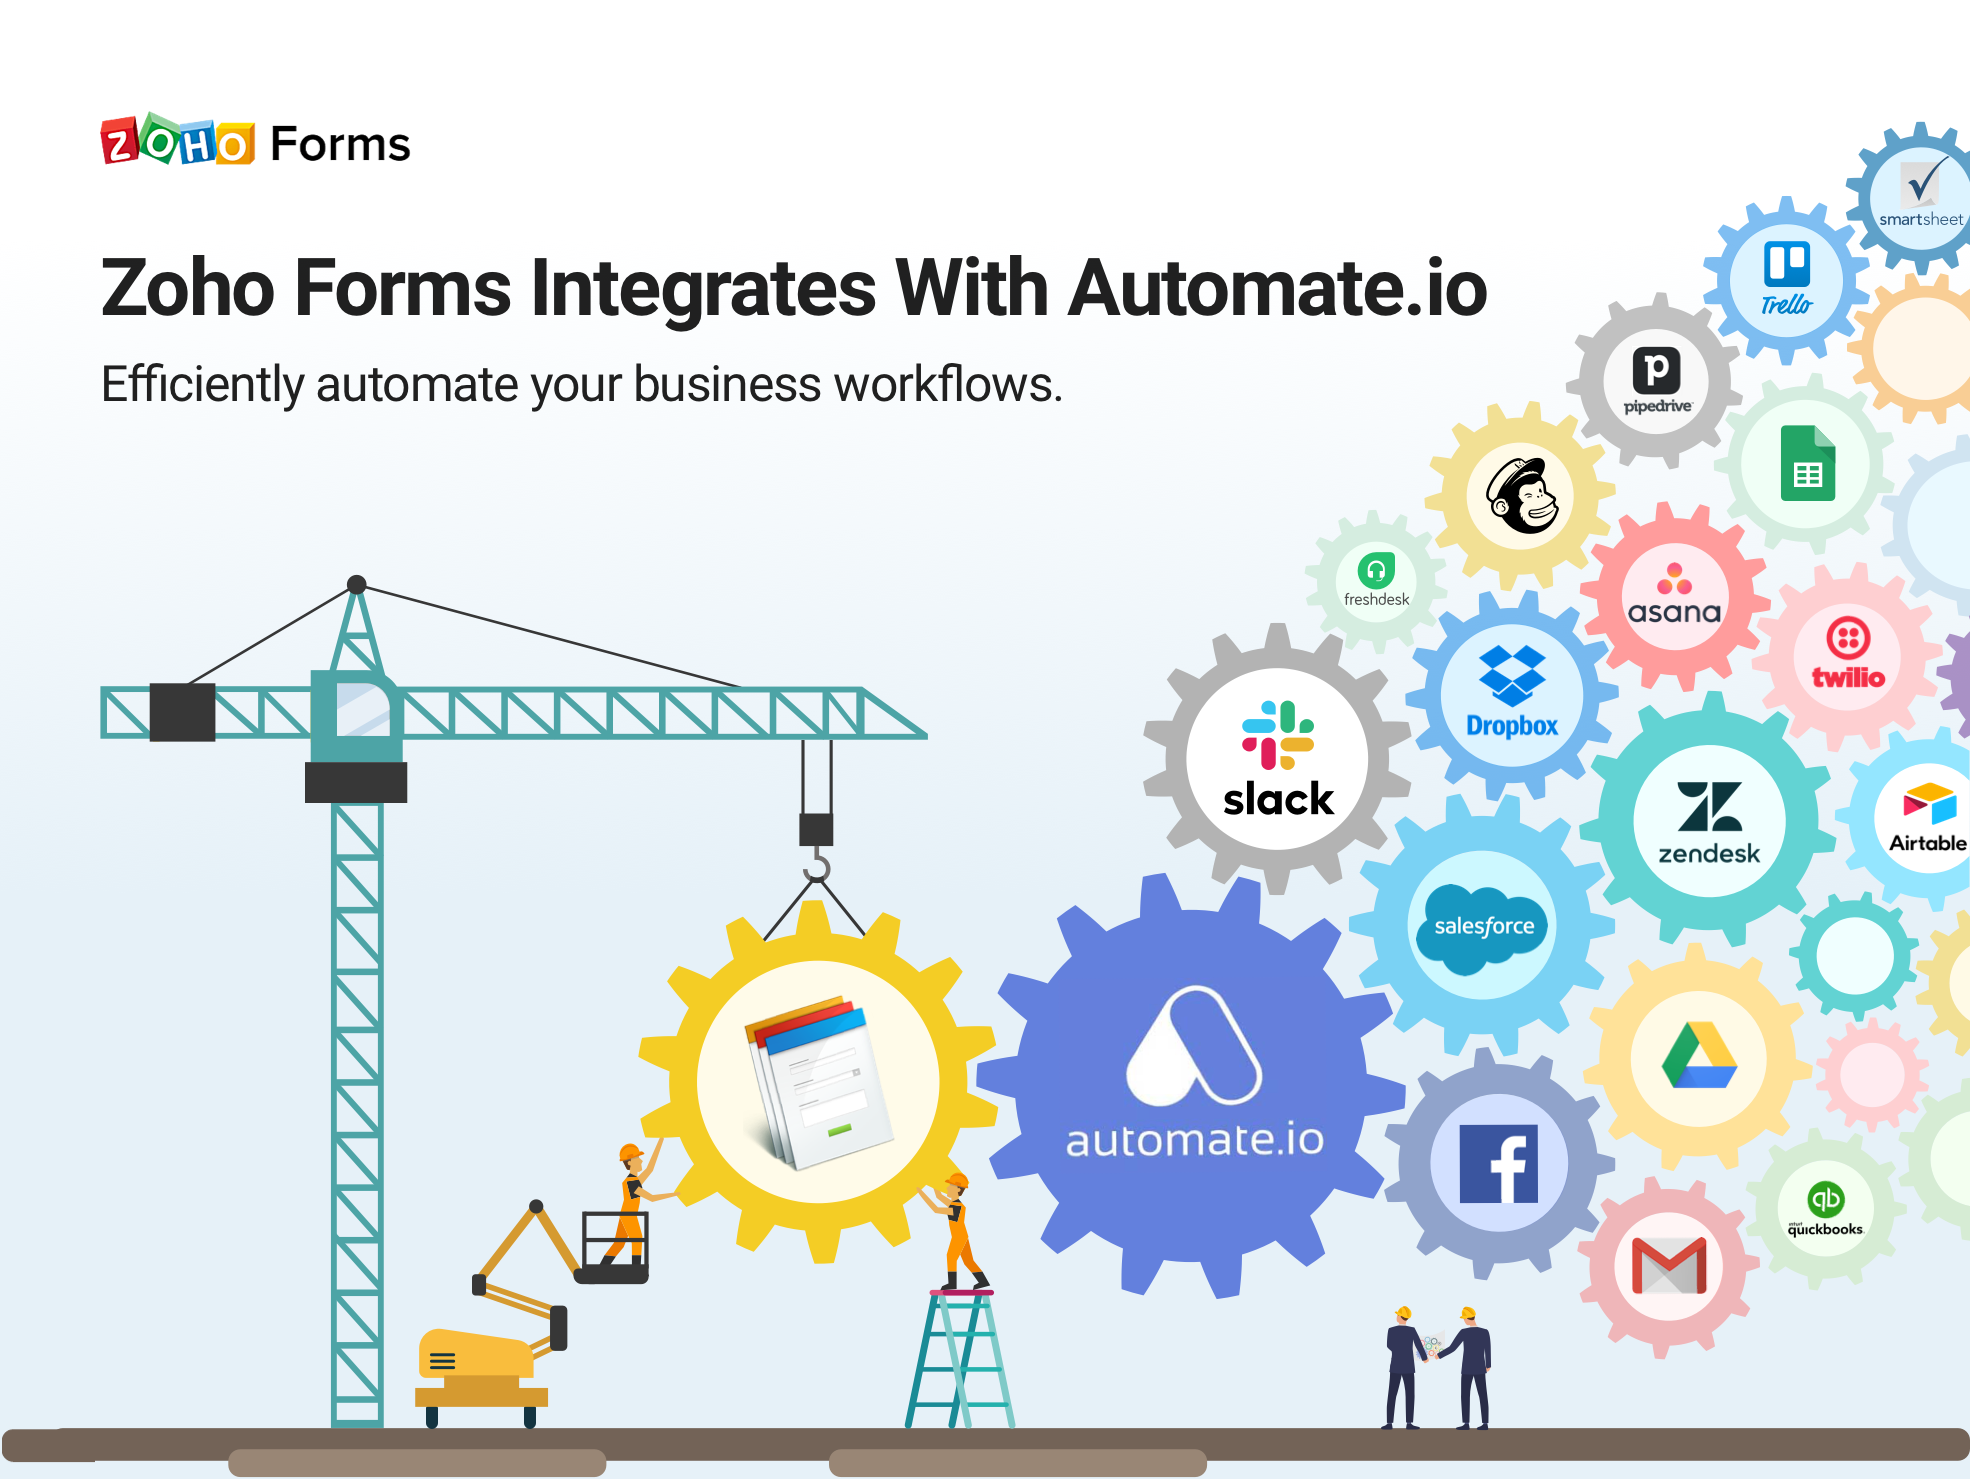 Enhance Your Productivity with the Zoho Forms-Automate.io Integration